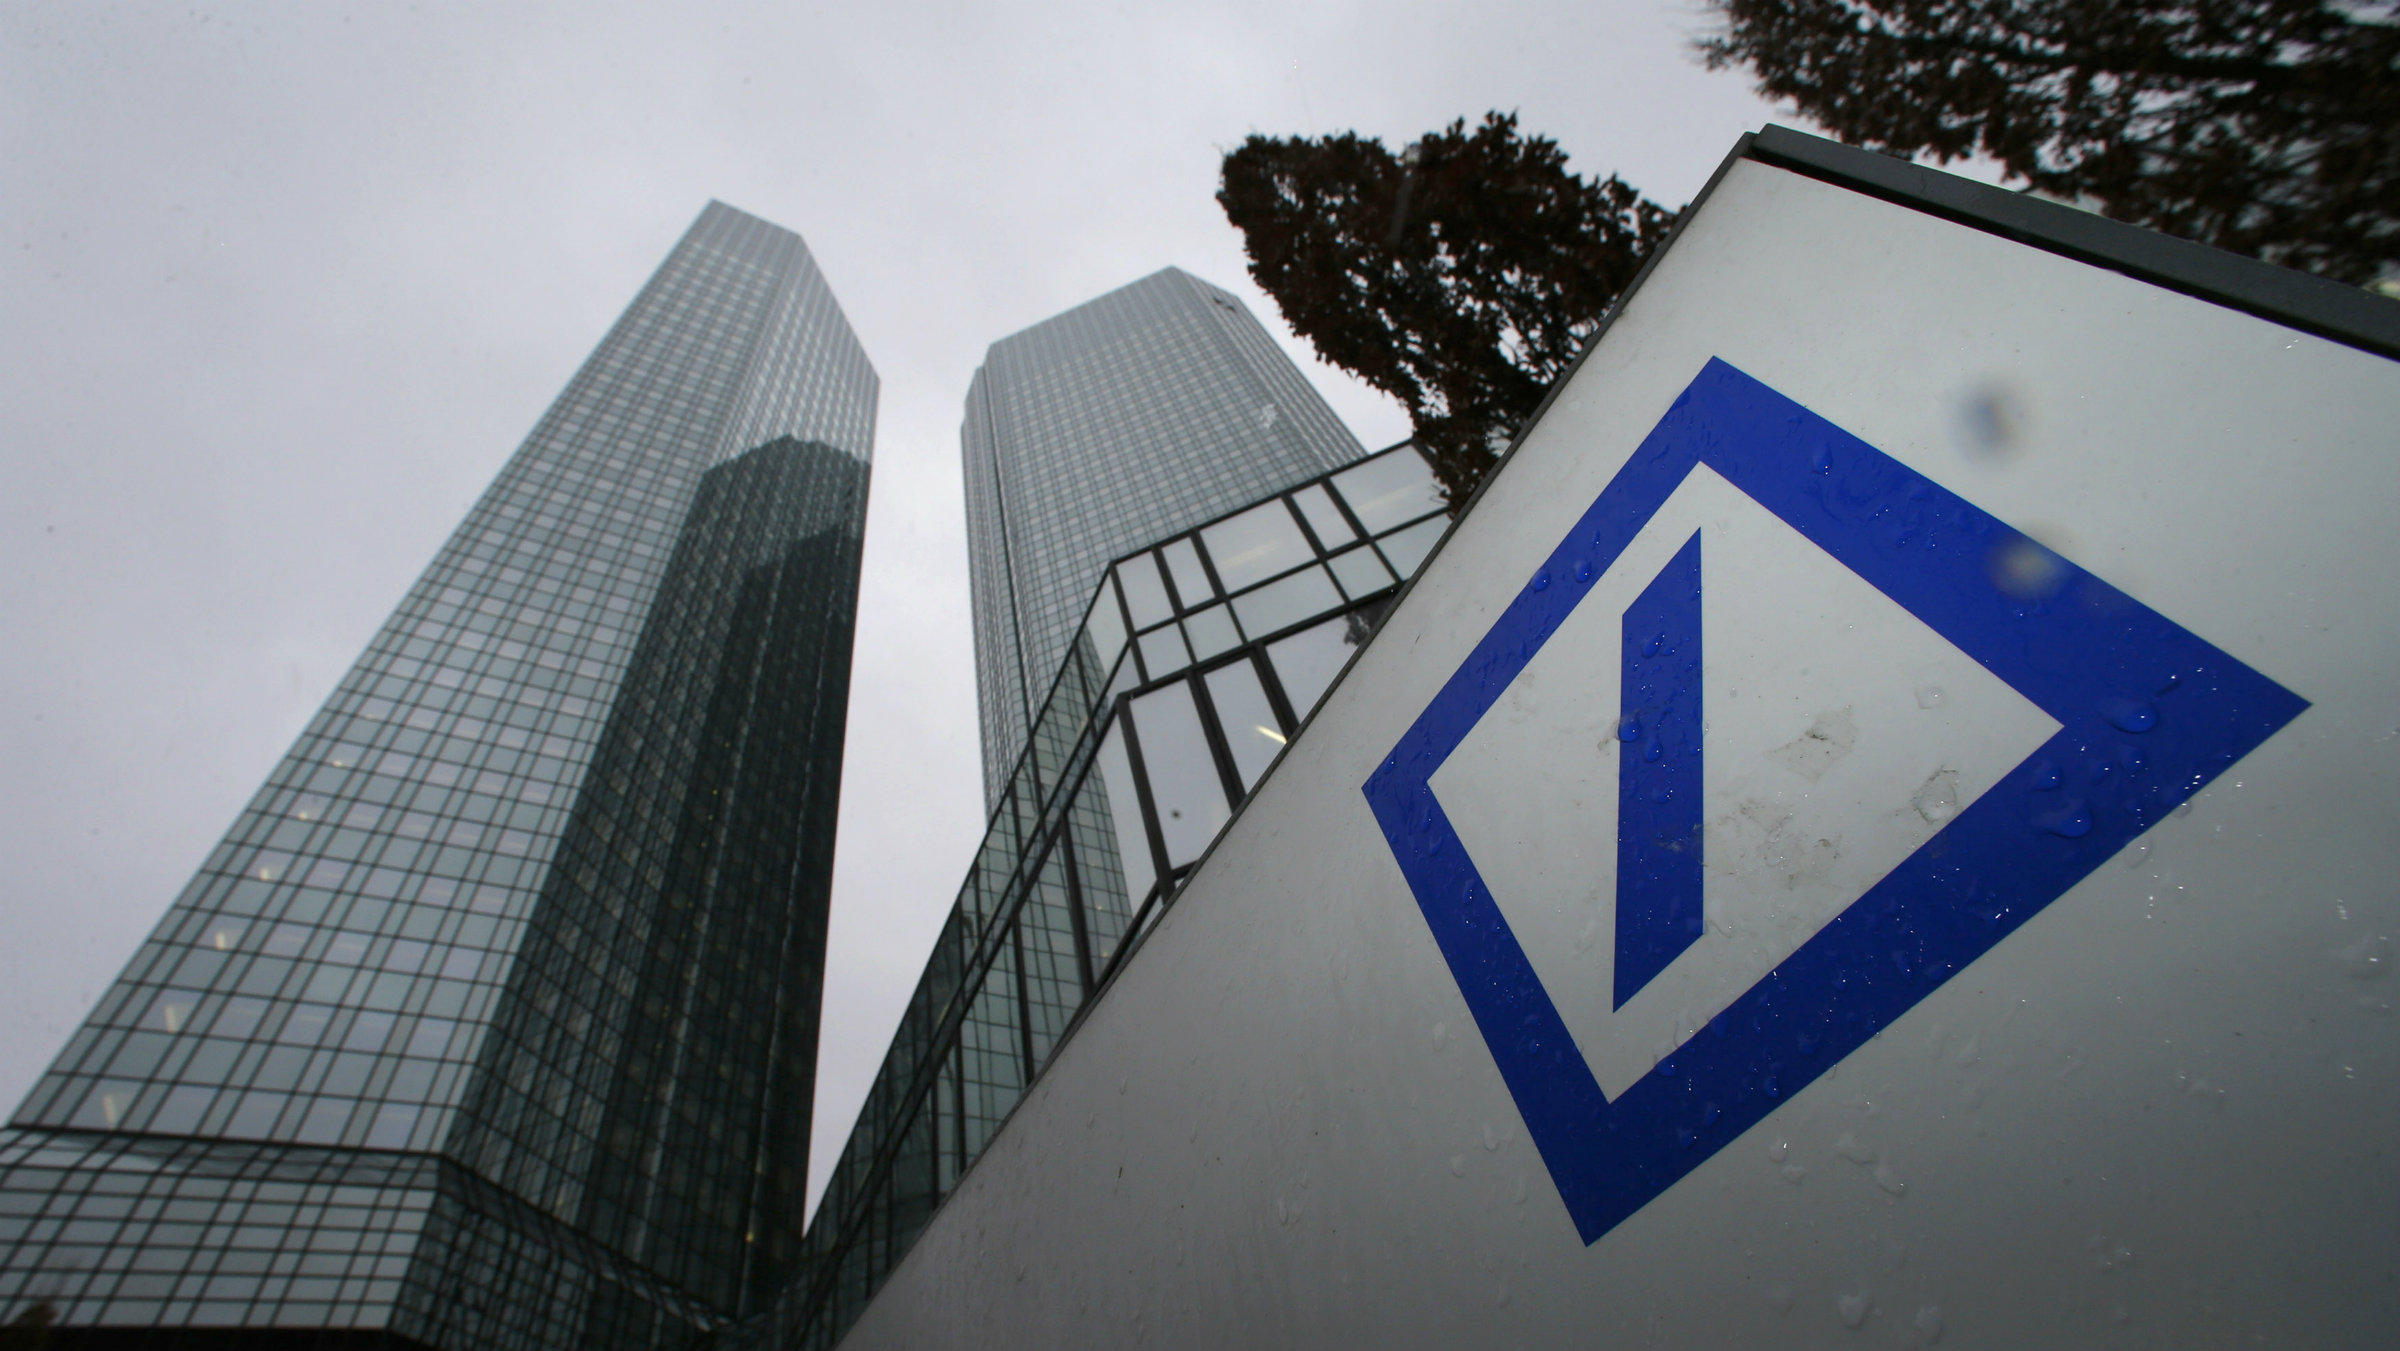 The headquarters of Deutsche Bank are pictured in Frankfurt.